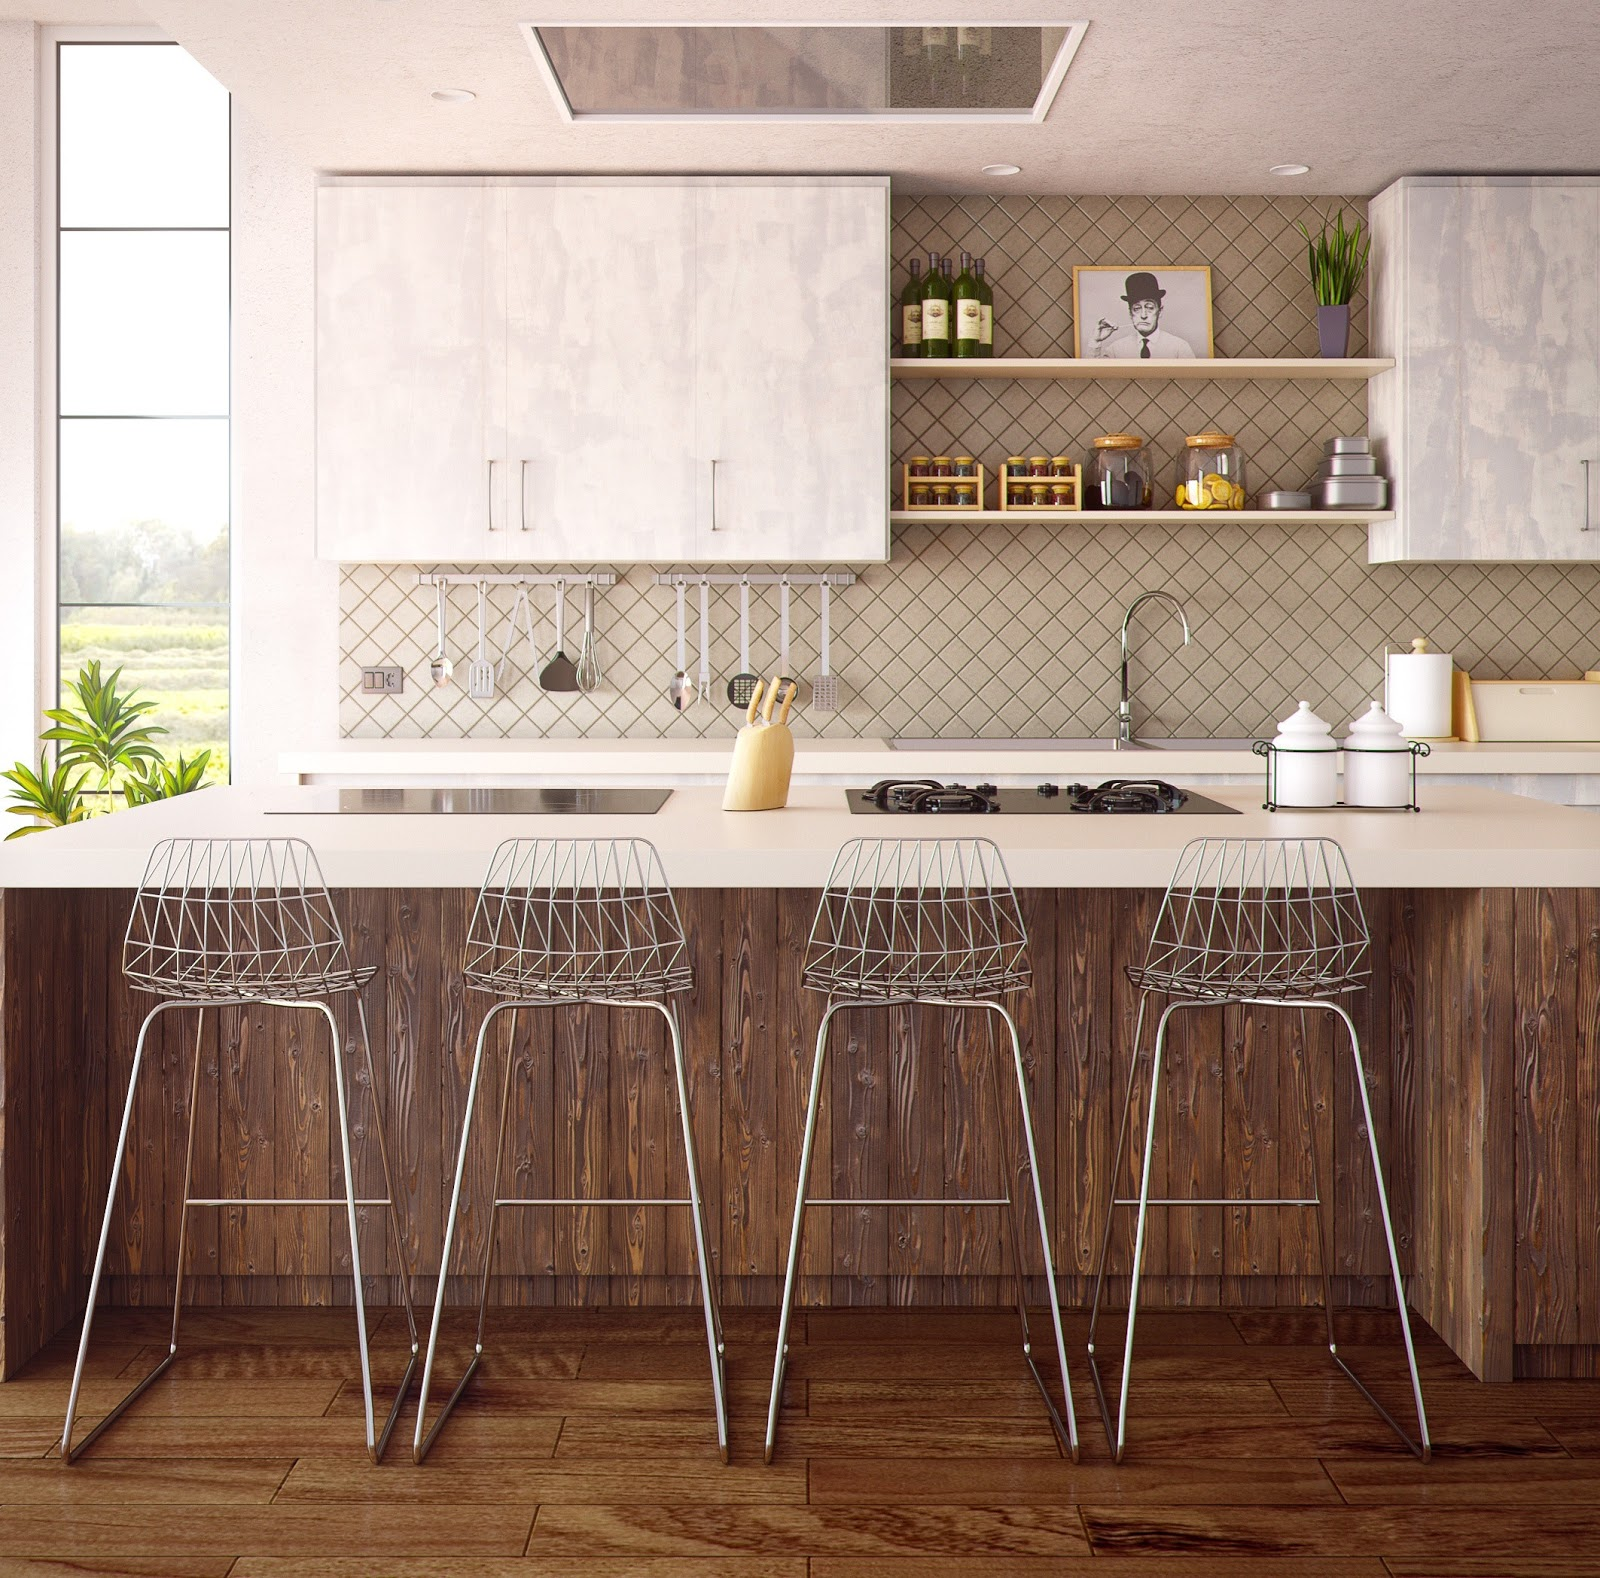 Four Gray Bar Stools in Front of Kitchen Countertop